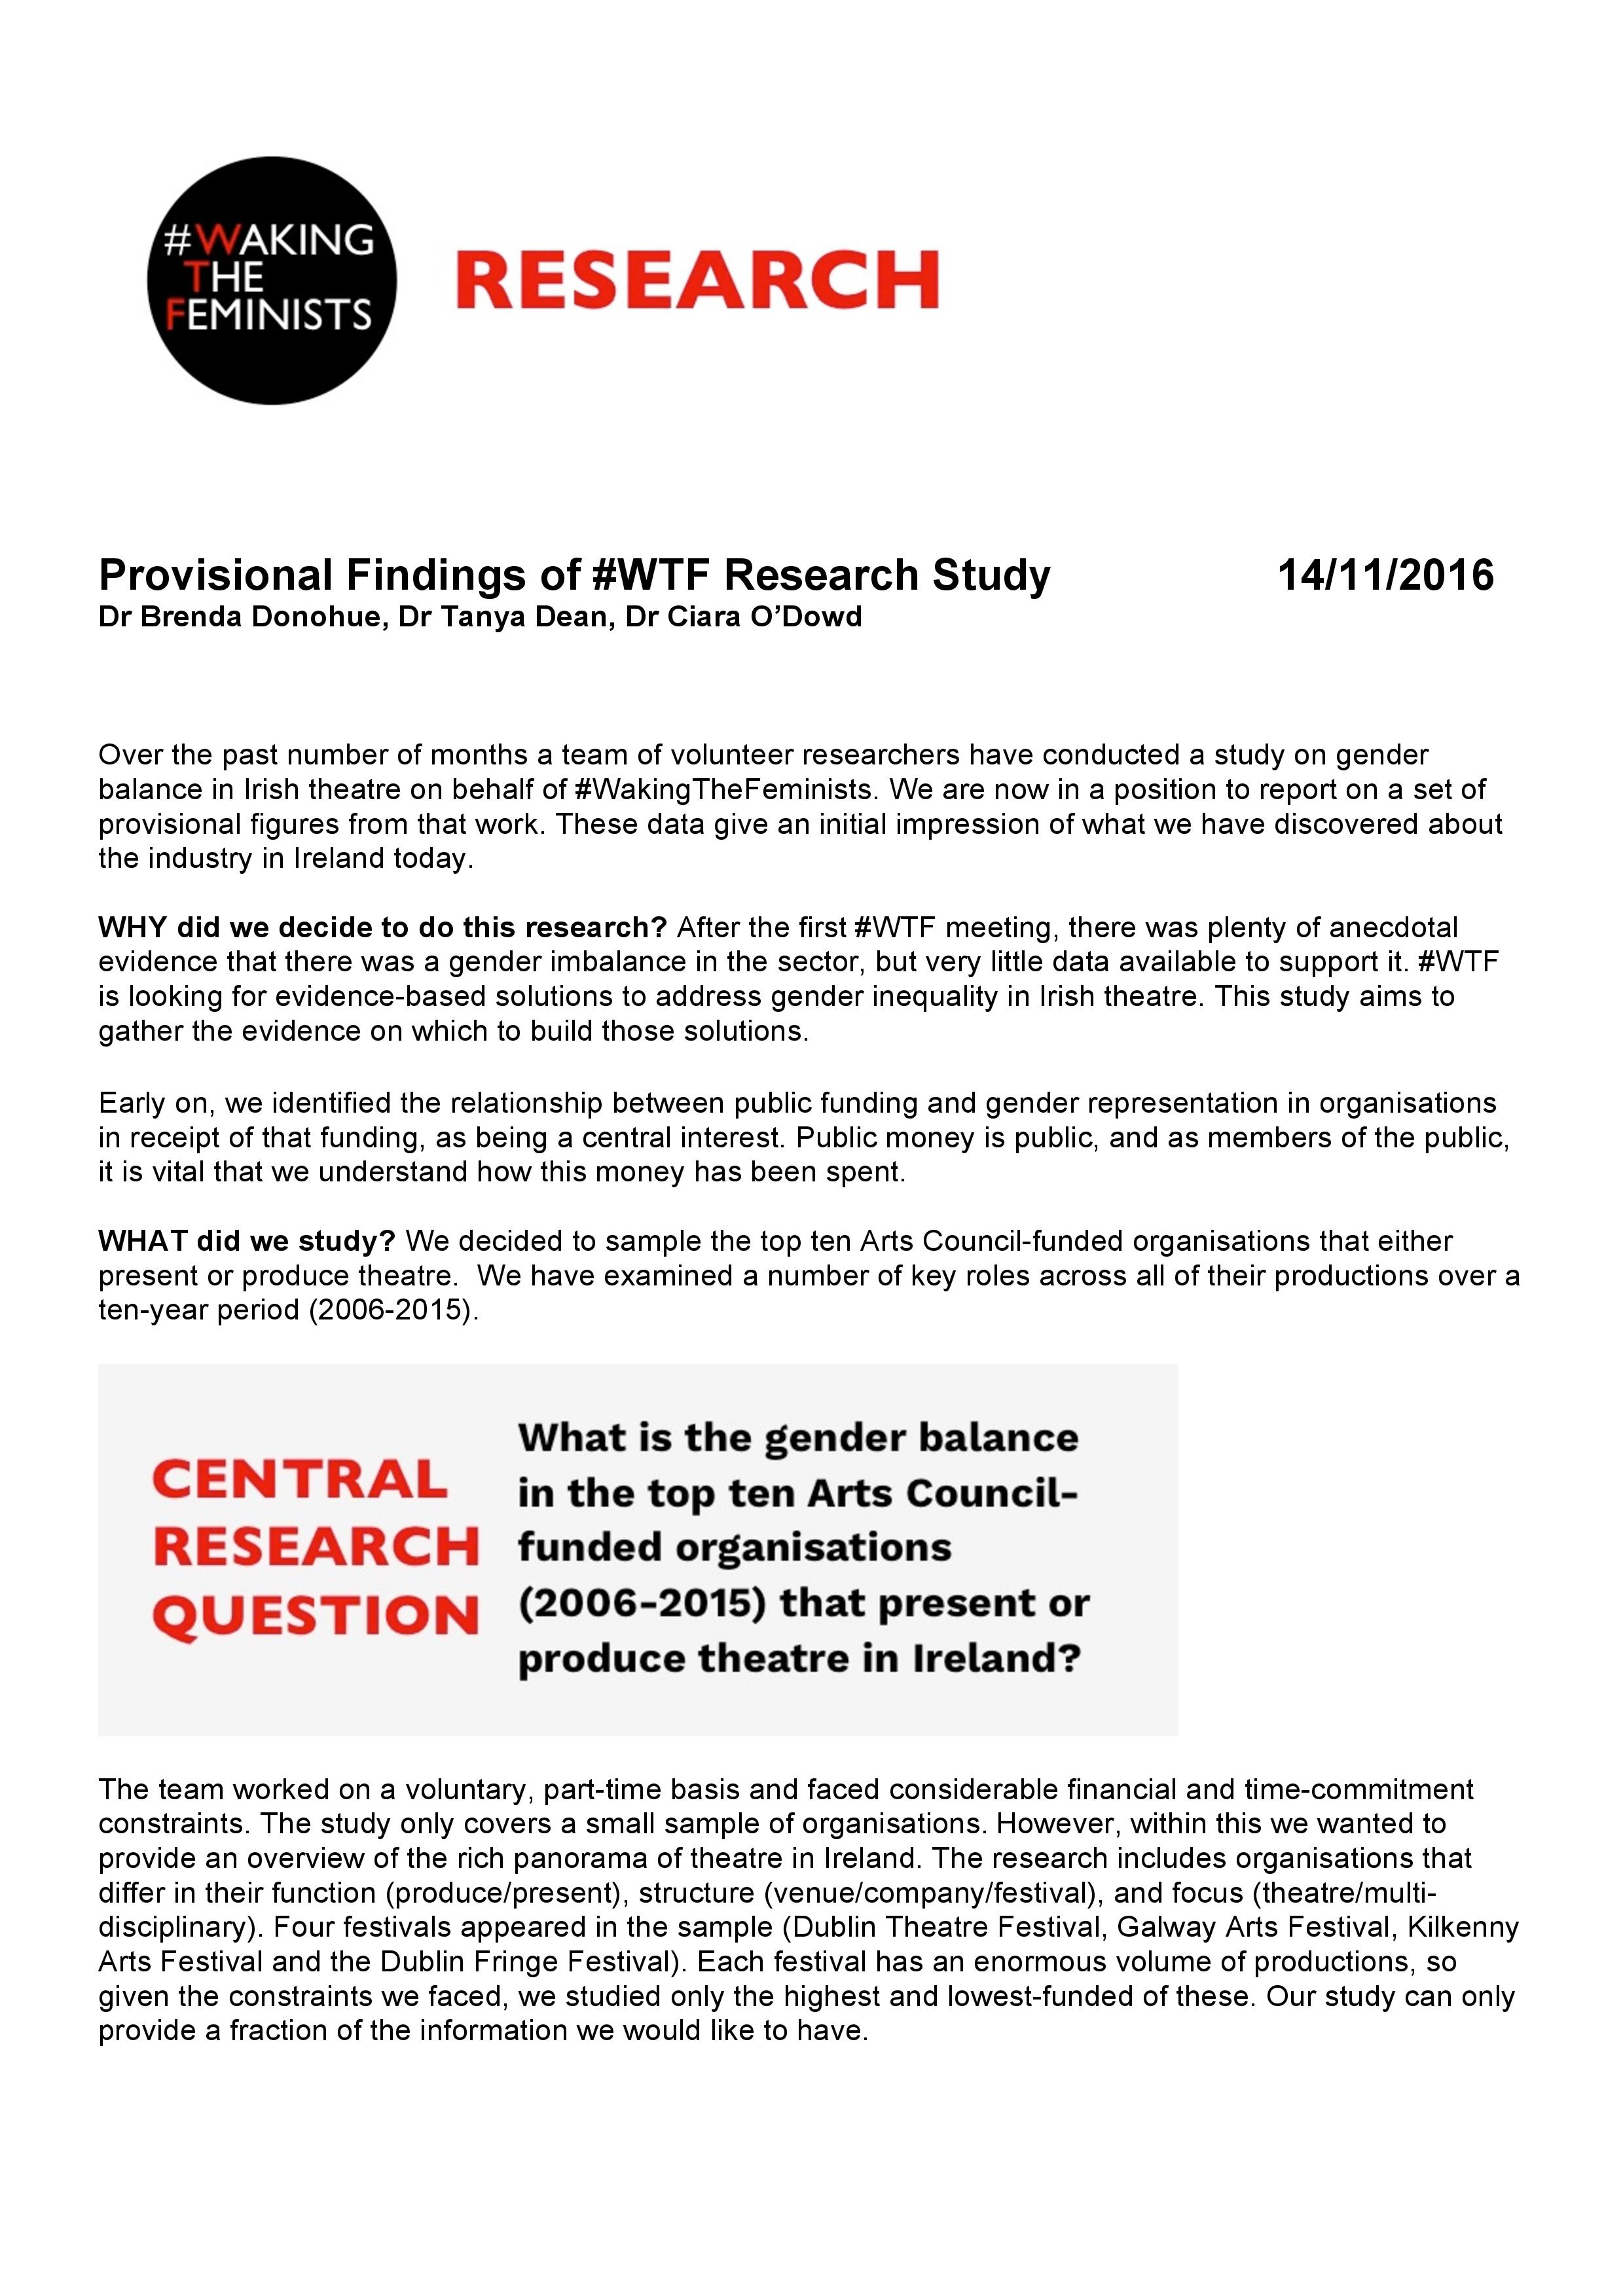 wakingthefeminists-provisional-research-findings-page-001